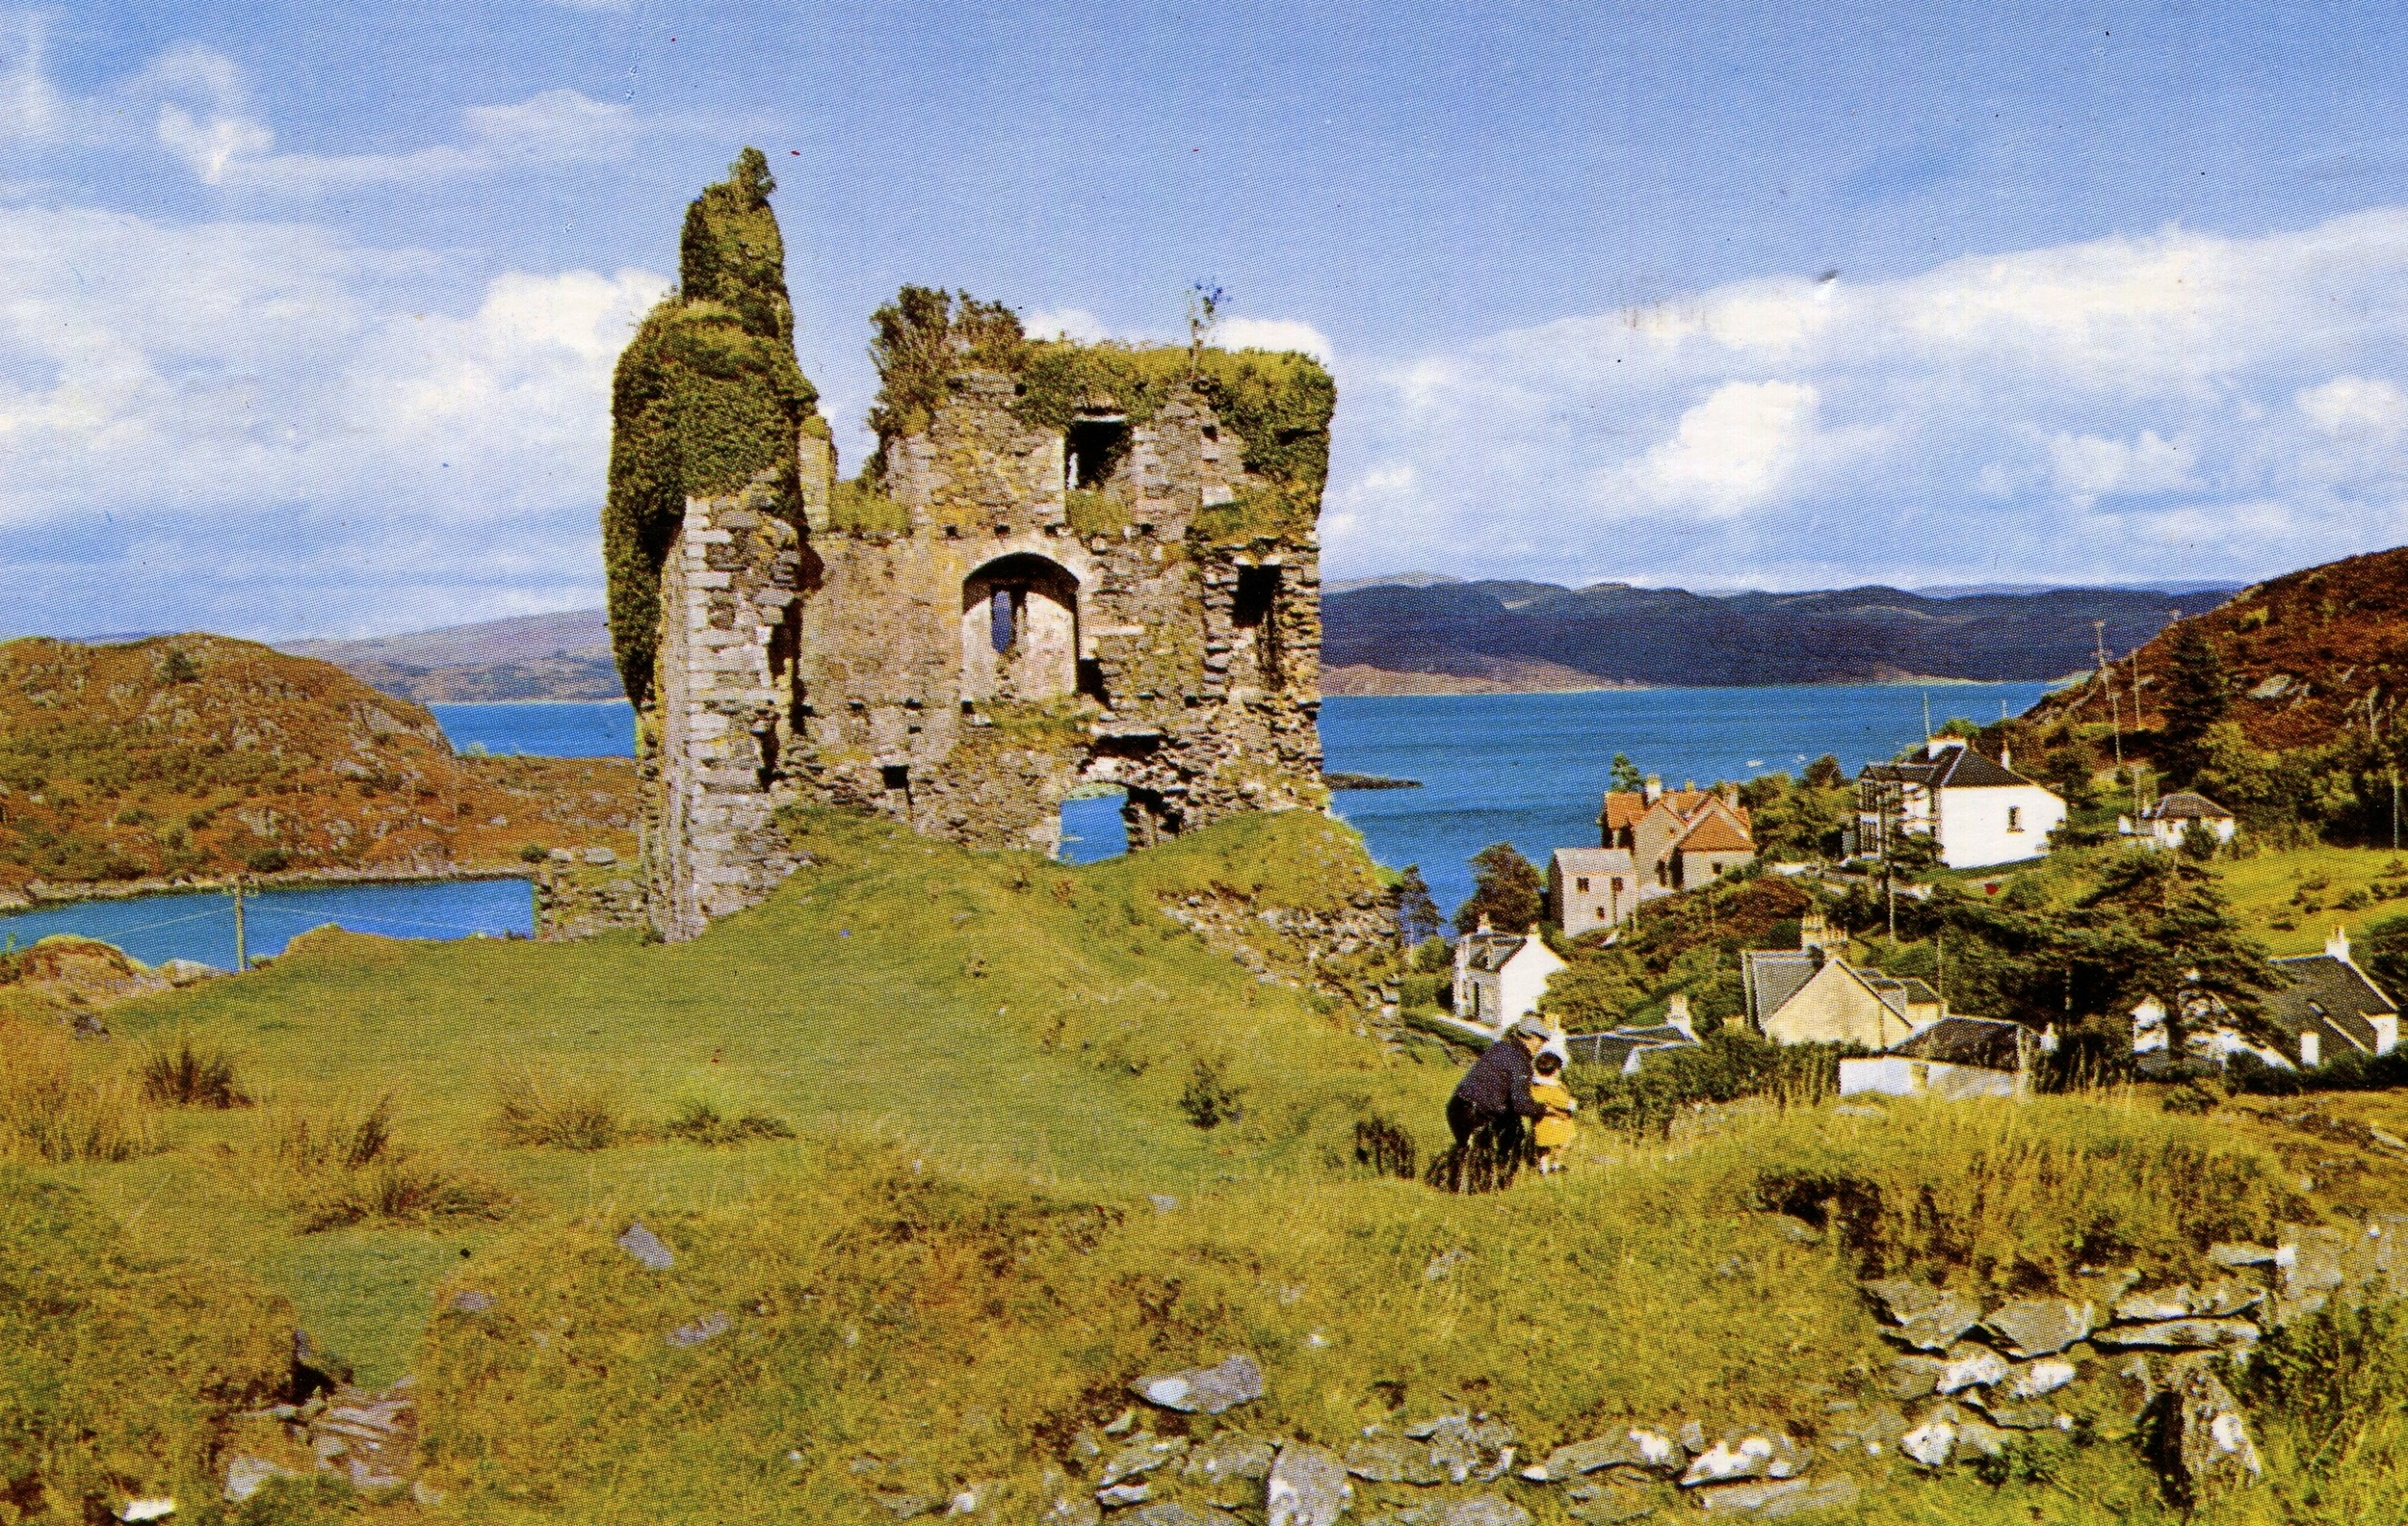 Tabret Castle, Scotland